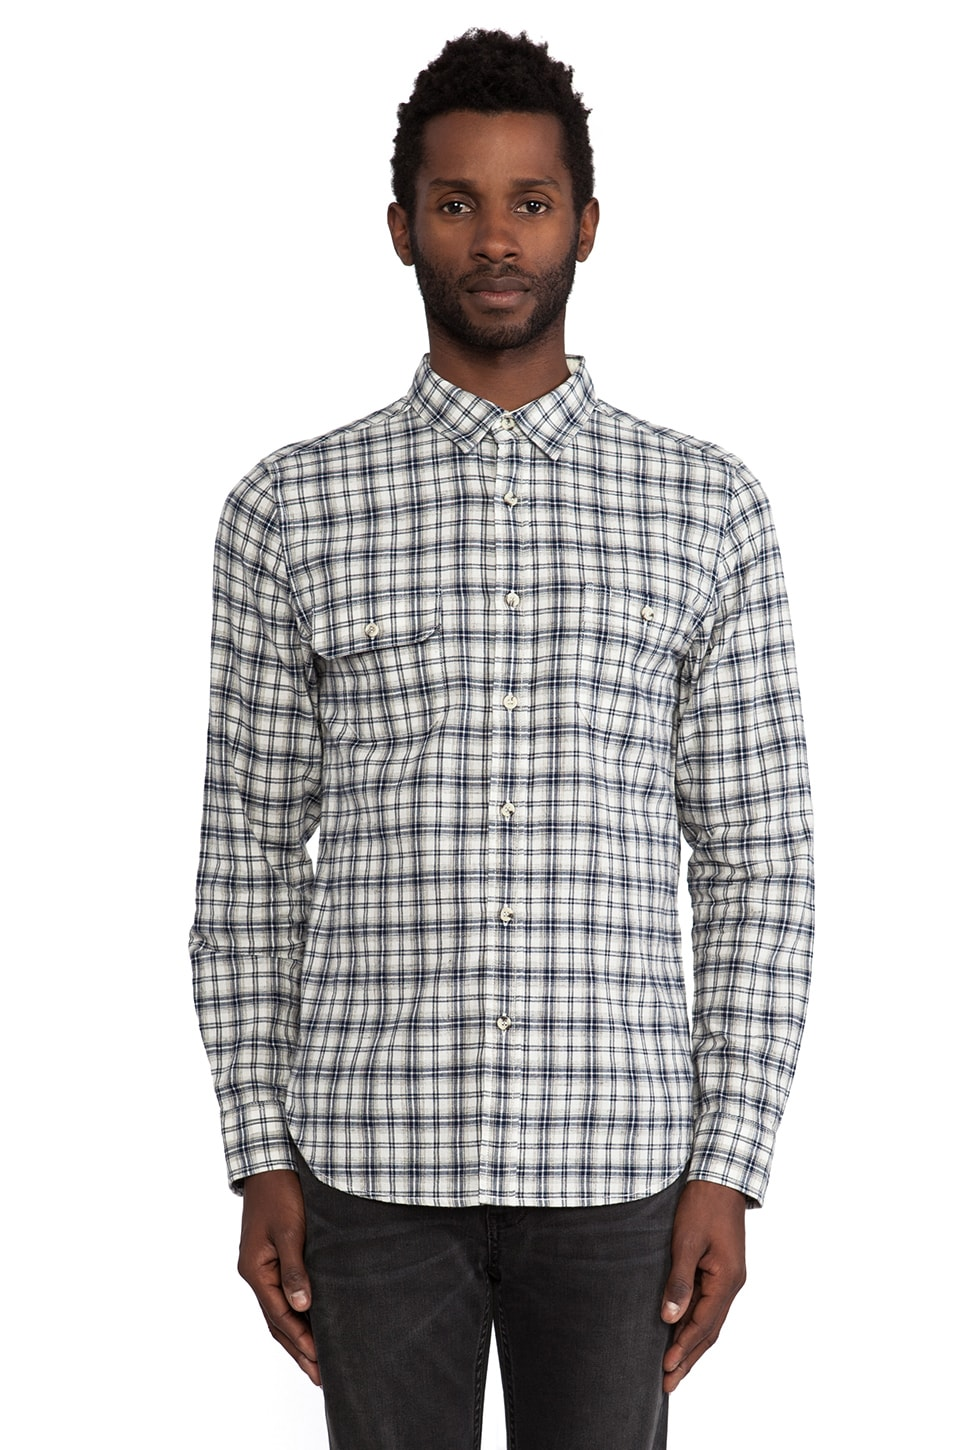 TOVAR Tosh Shirt in White Navy Plaid